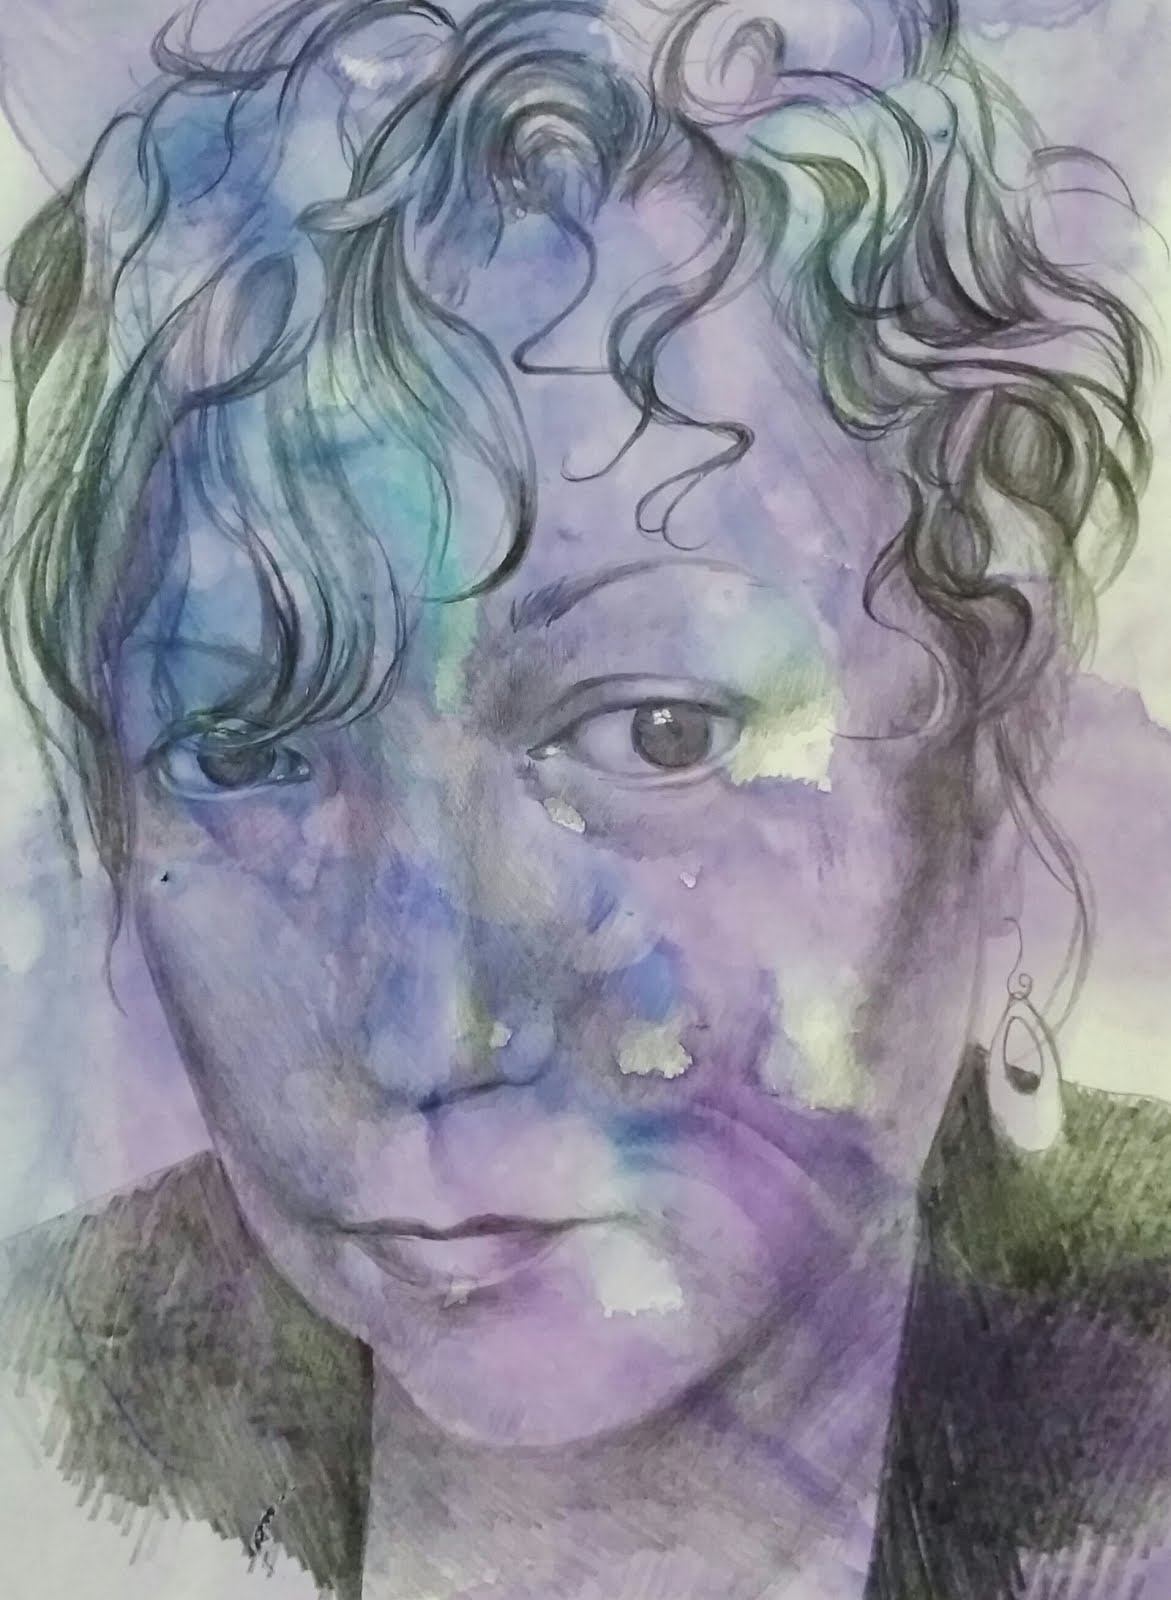 Self portrait, watercolor and graphite on Terraskin paper